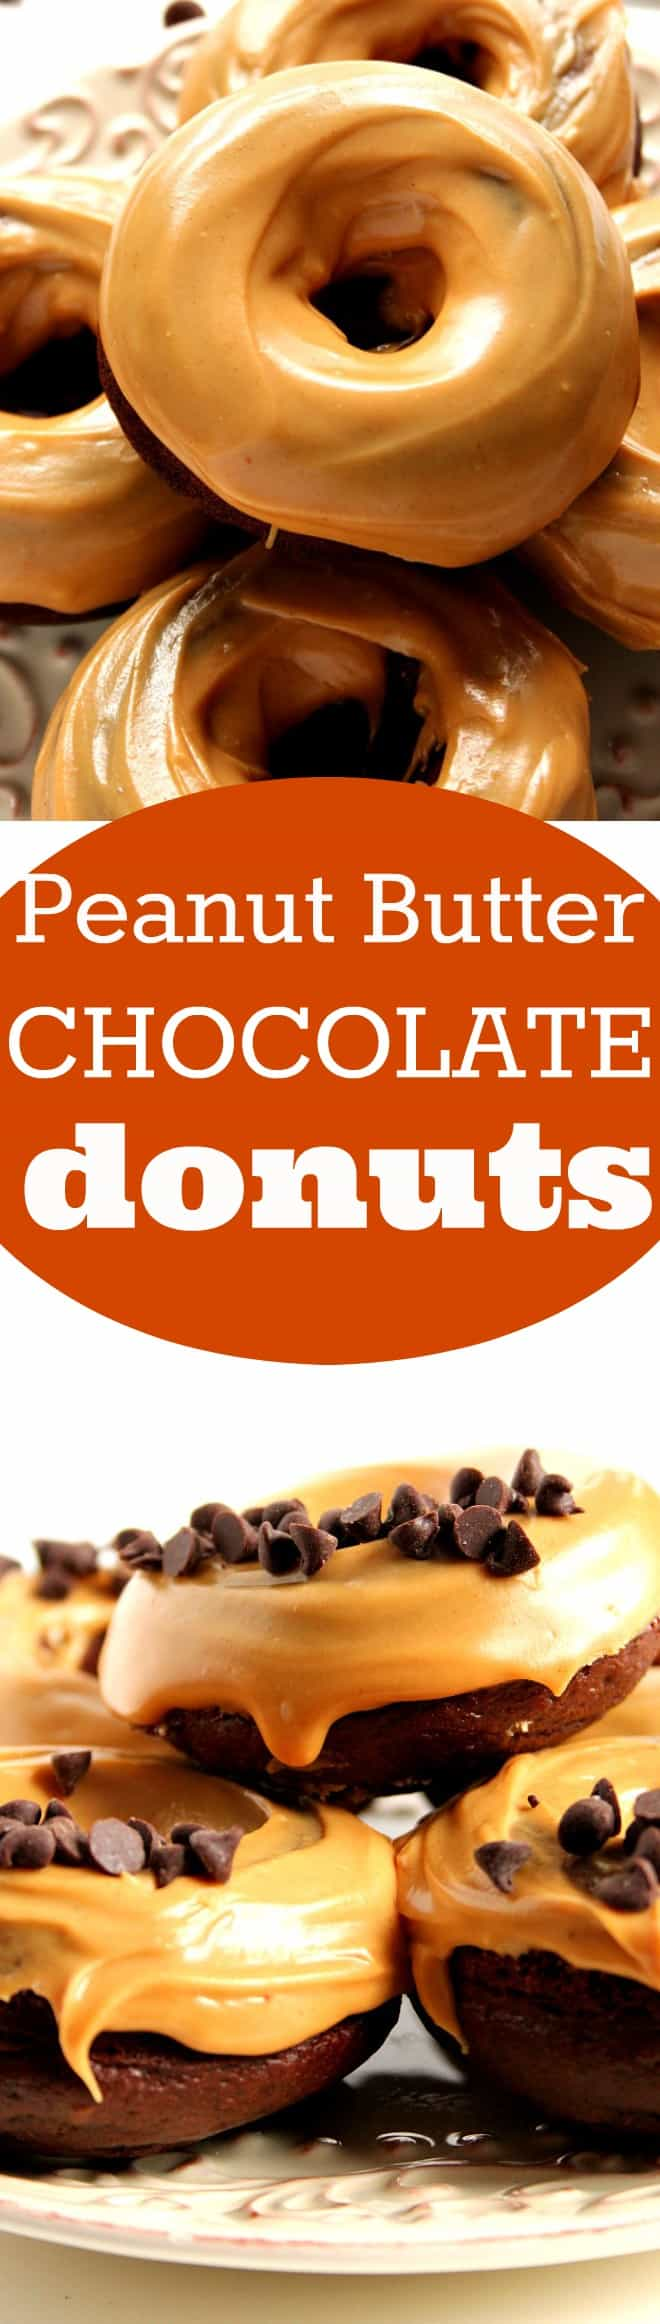 peanut butter glazed chocolate donuts long 1 Peanut Butter Glazed Chocolate Donuts Recipe